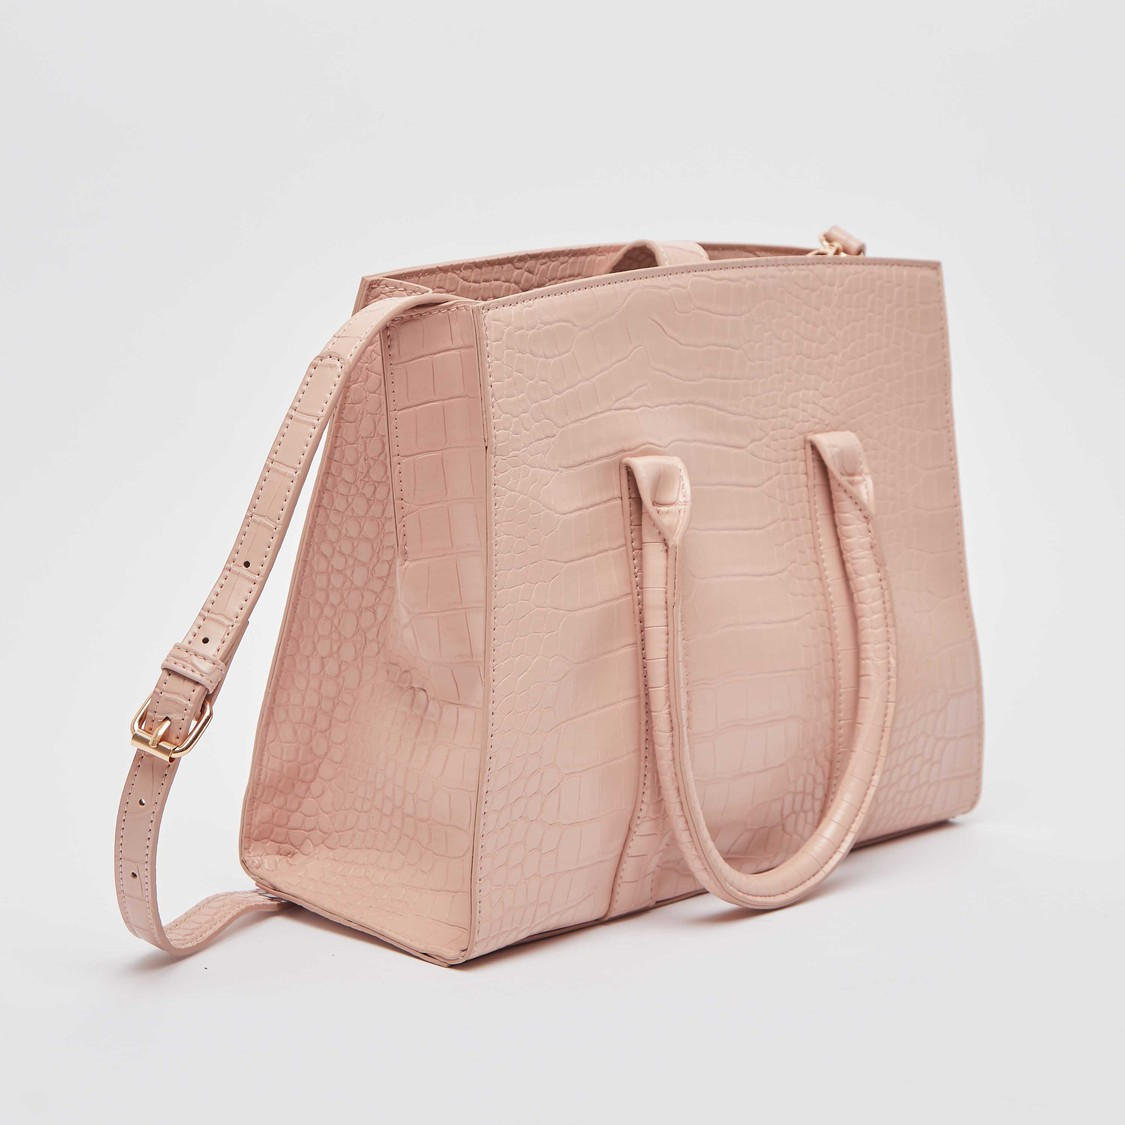 Textured Tote Bag with Short Handles and Detachable Sling Straps